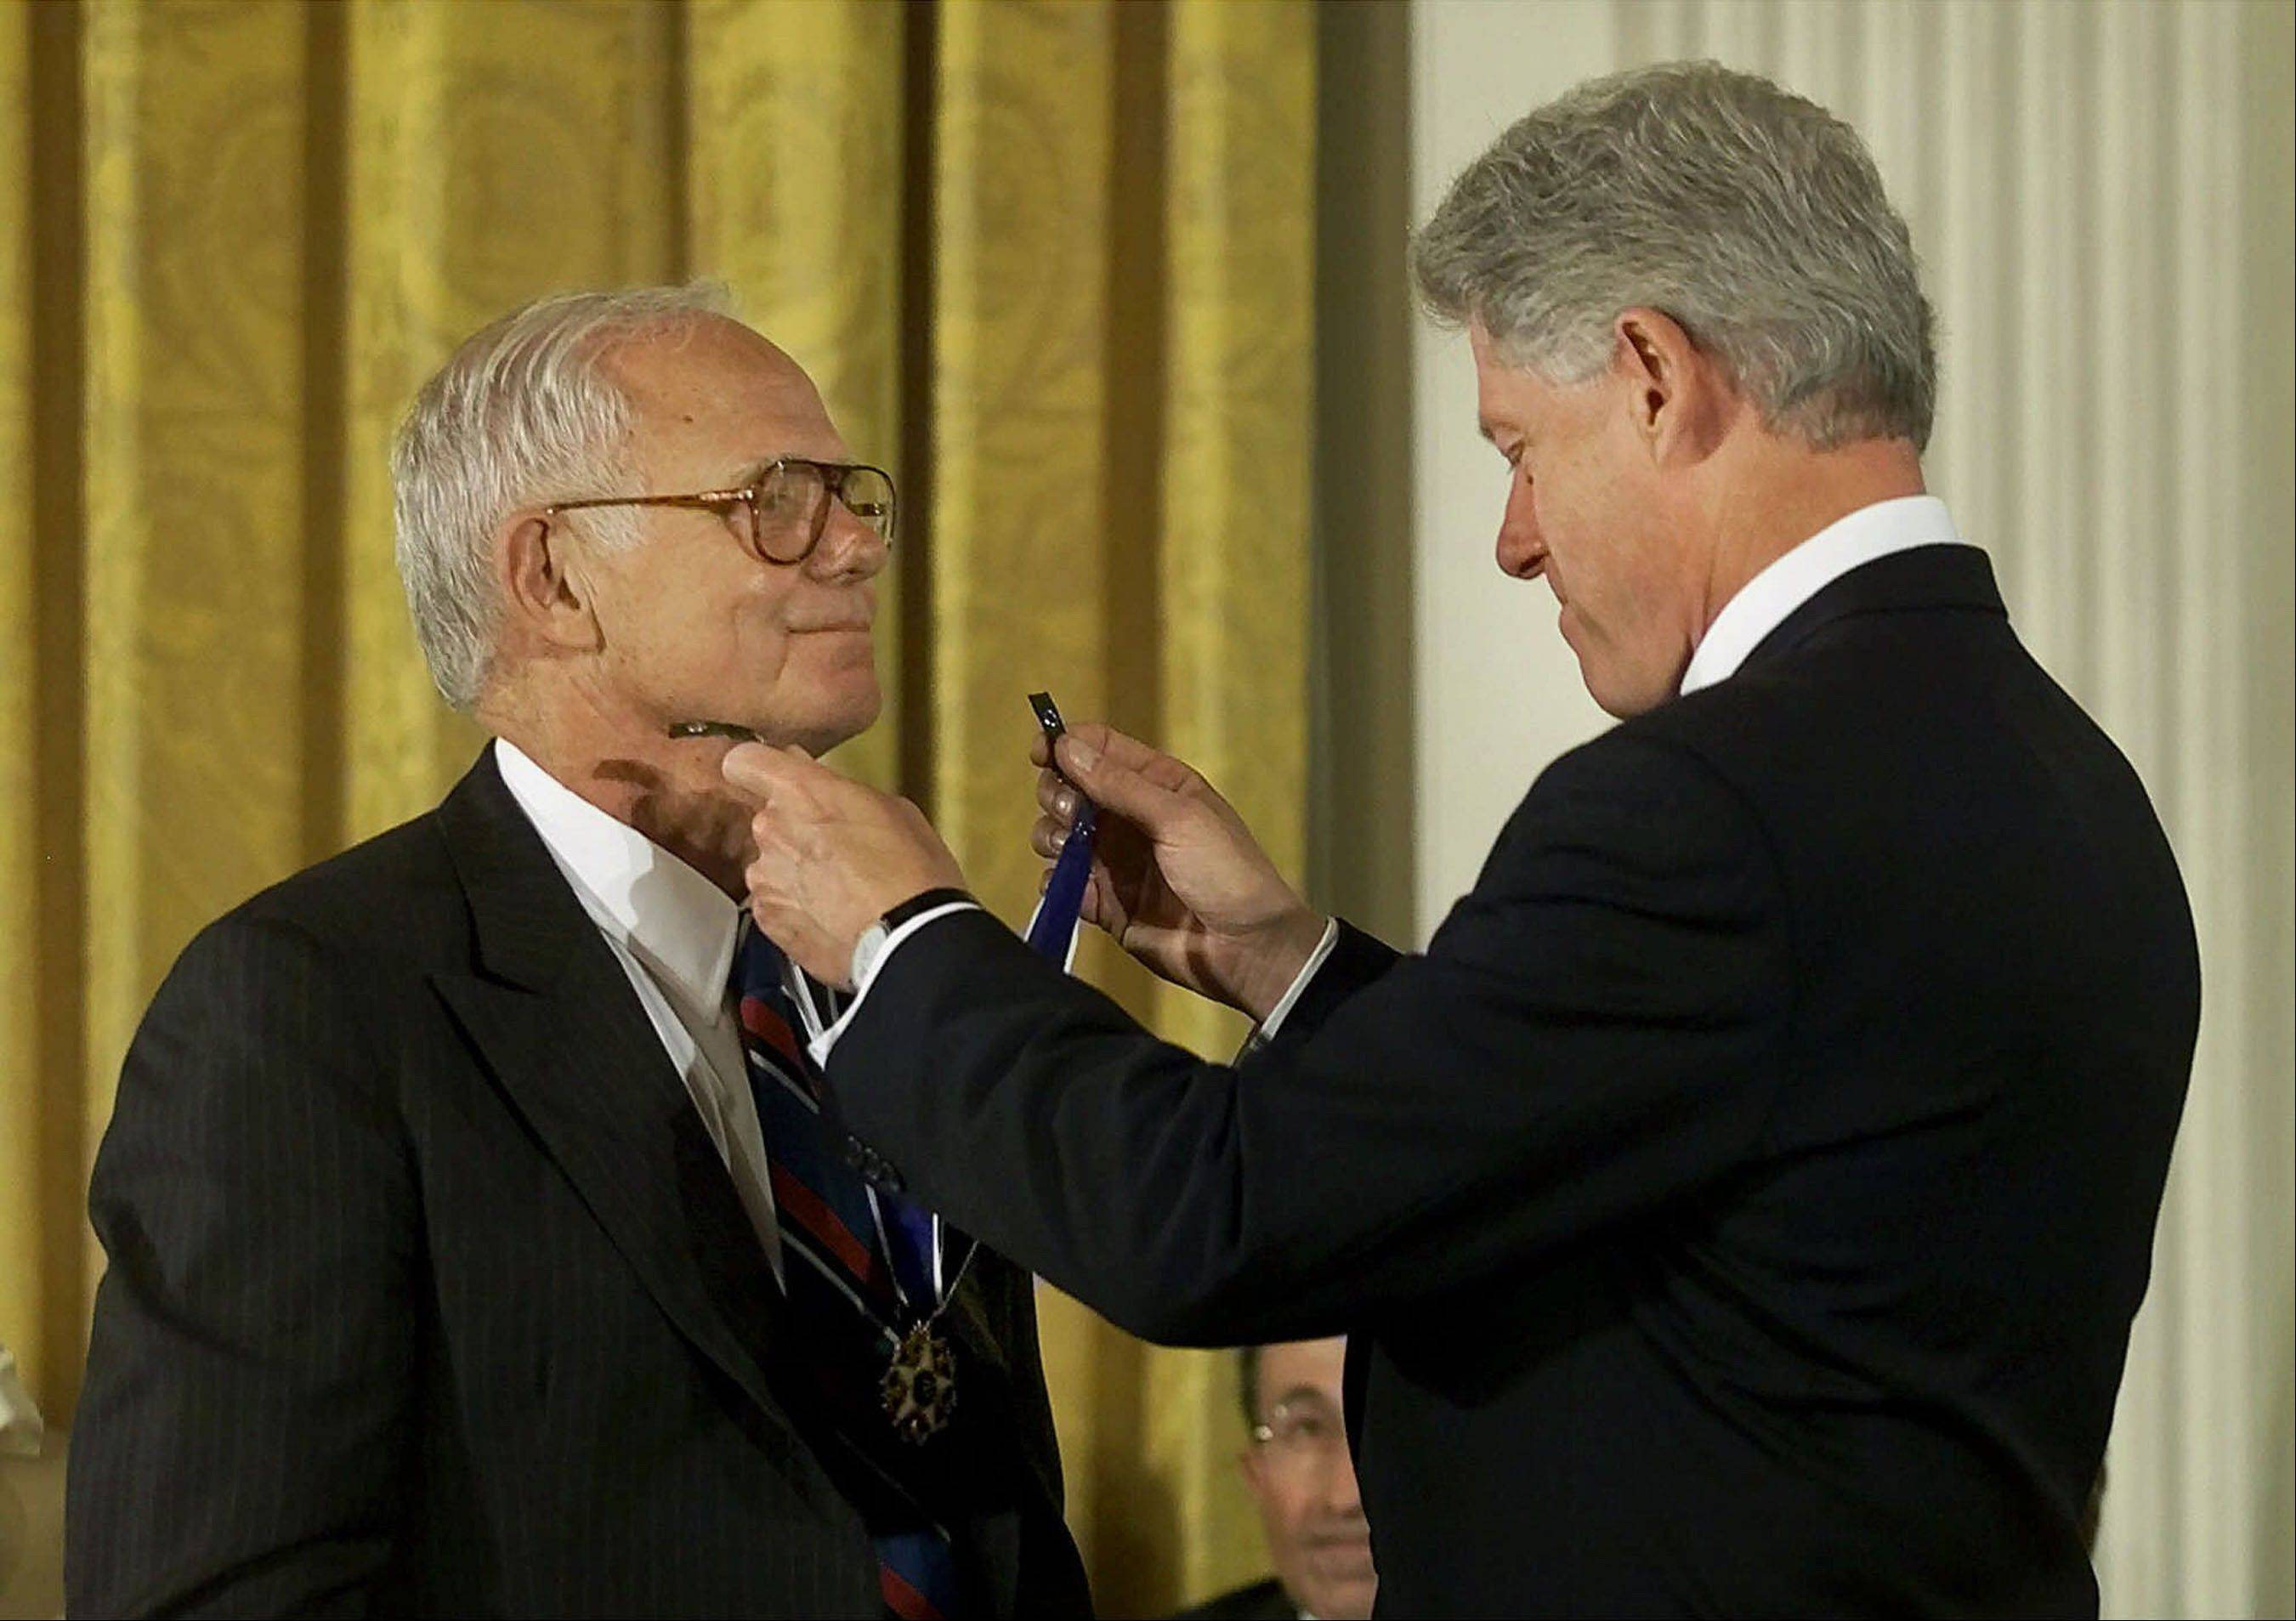 In an Aug. 9, 2000 photo provided by Johnson & Johnson, President Bill Clinton, right, awards former Johnson & Johnson CEO James E. Burke the Presidential Medal of Freedom, in Washington. Burke, who helped the company expand dramatically around the world and steered it through the Tylenol poisonings in the 1980s, died on Friday, Sept. 28. He was 87.